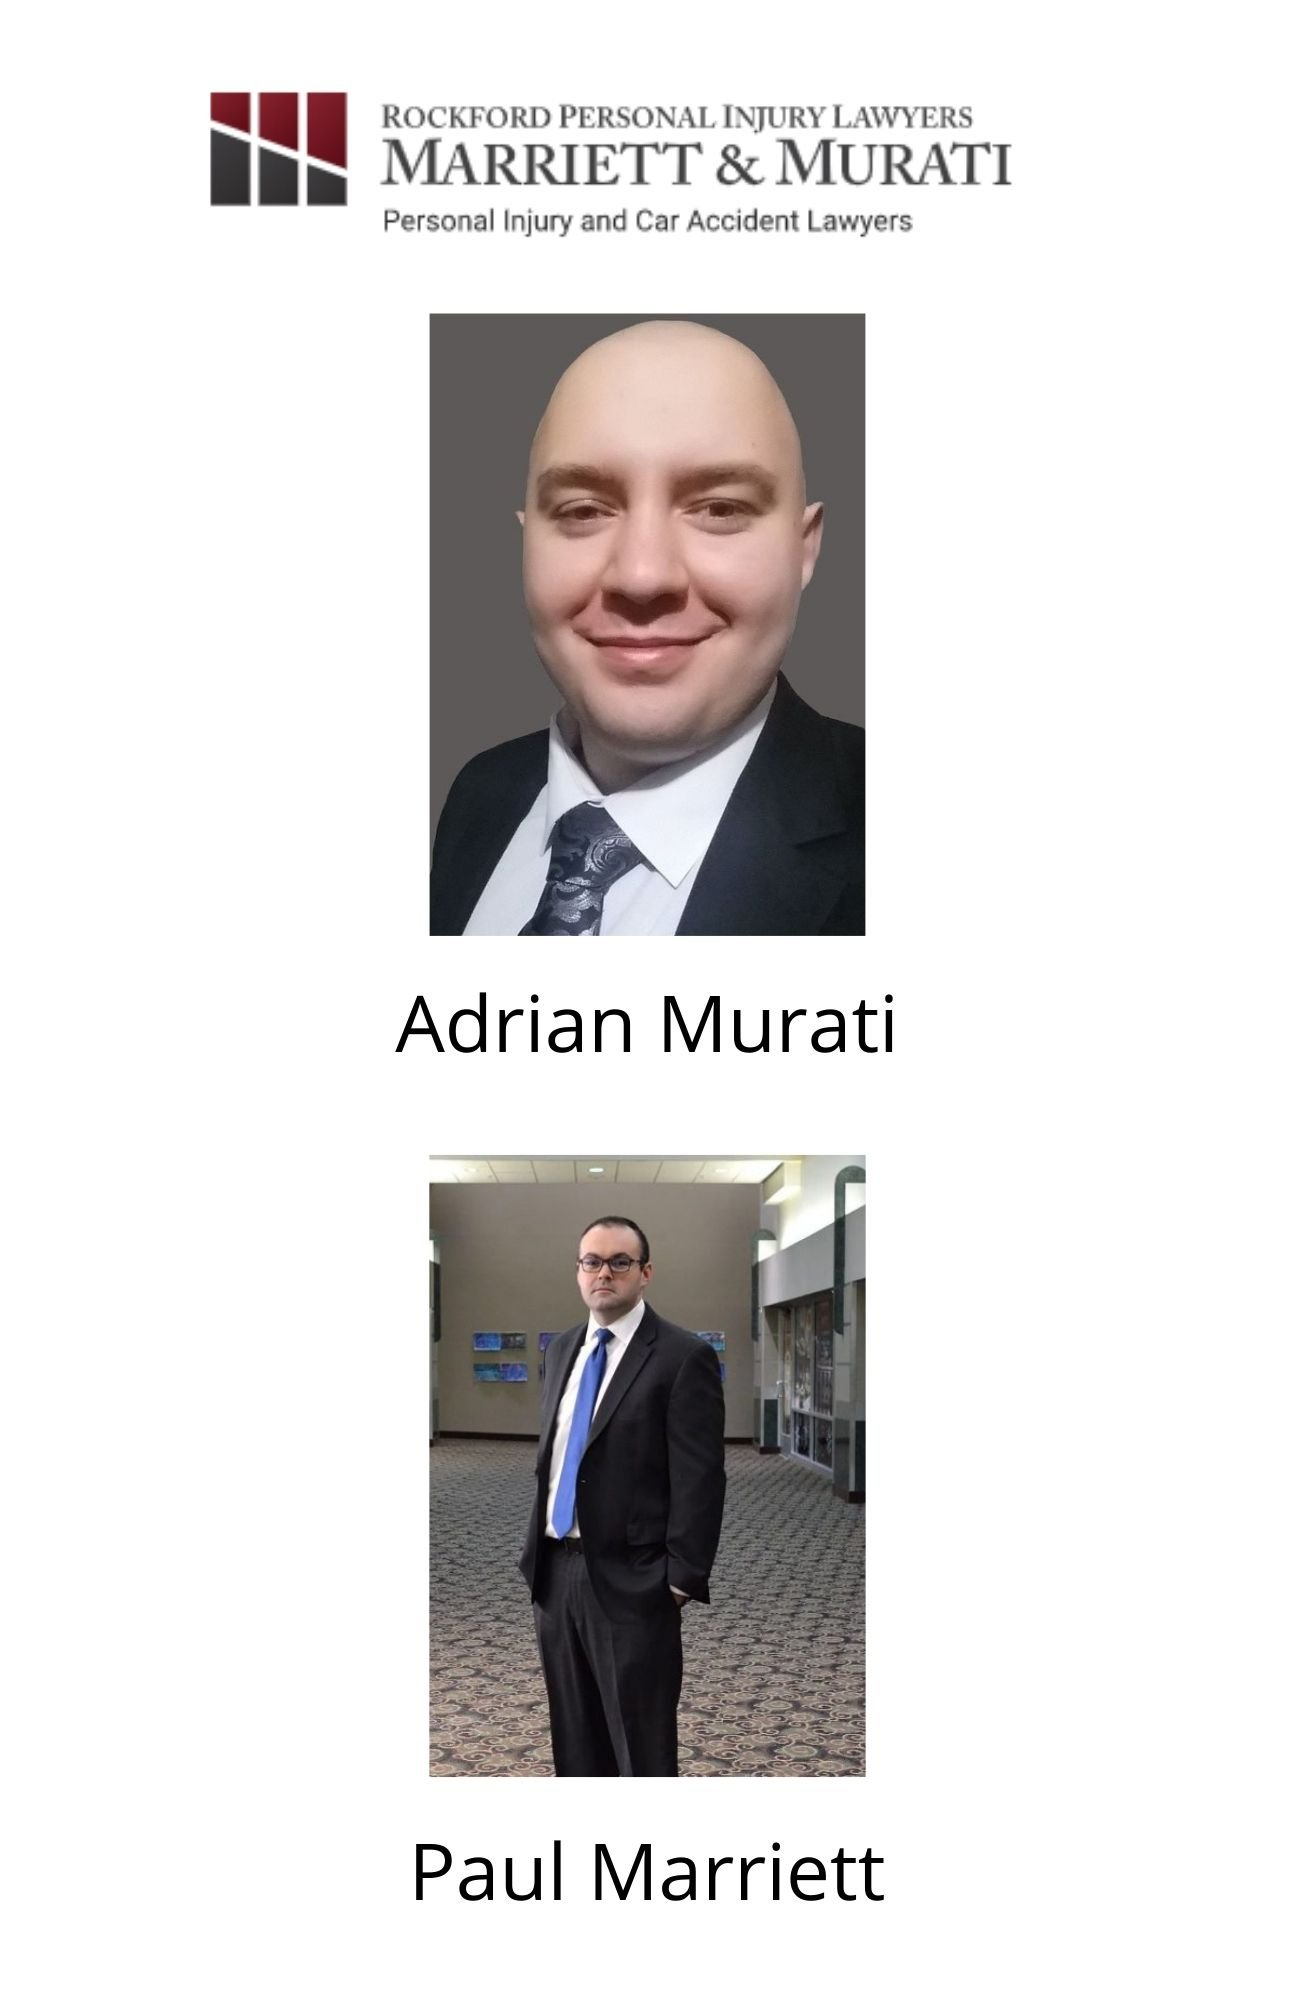 Adrian Murati and Paul Marriett of Rockford Personal Injury Lawyers